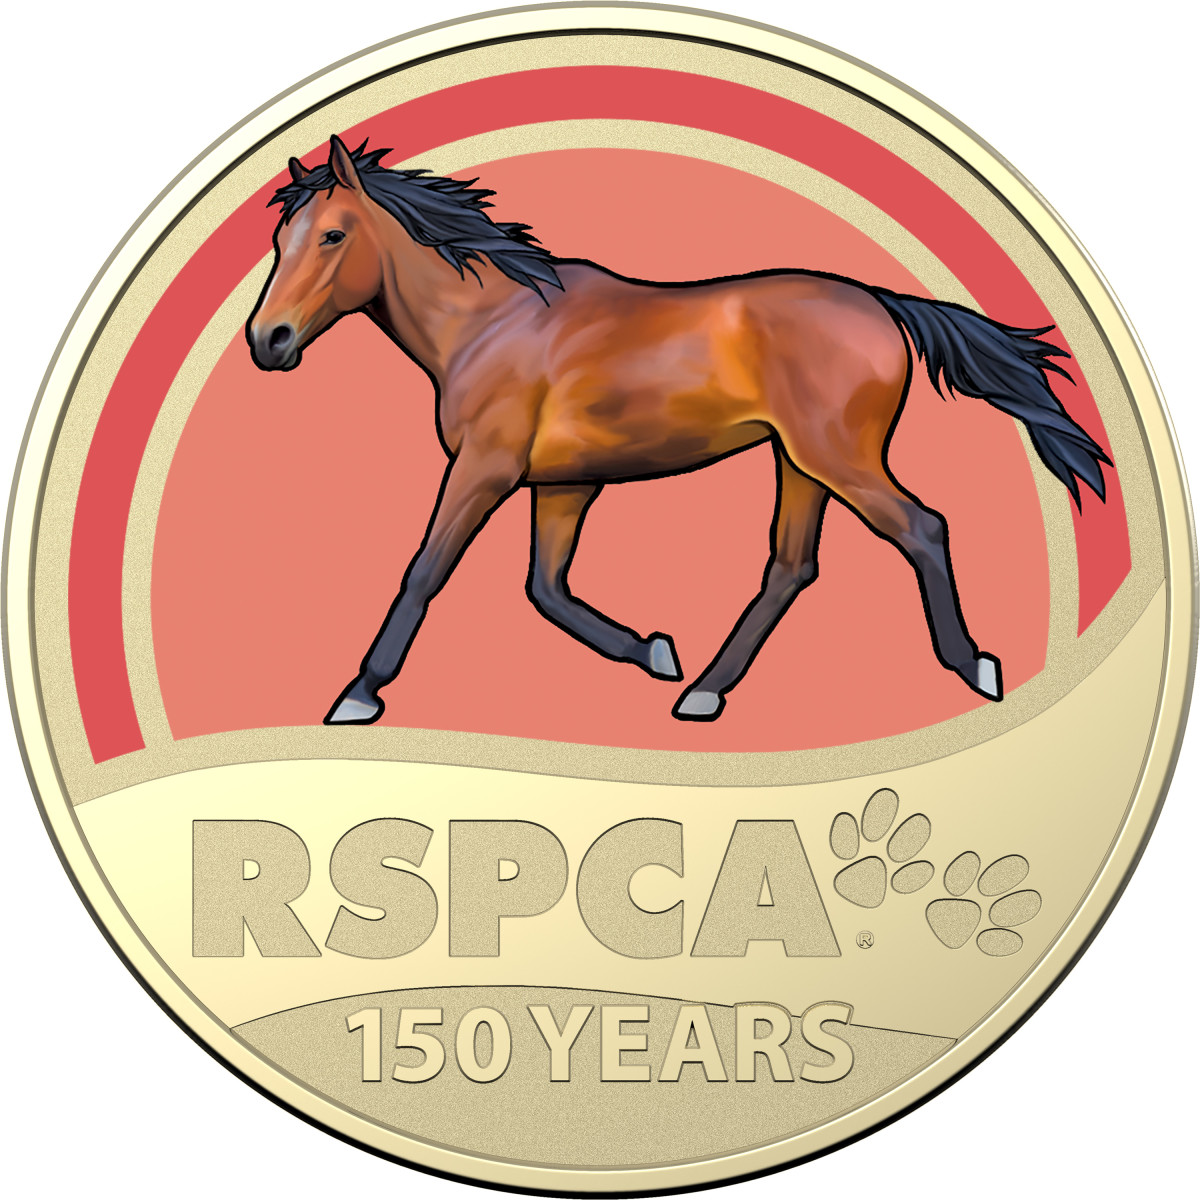 The elegance of the horse is captured in this coin, fitting for the RSCPA, which started as a way to help the welfare of horses.